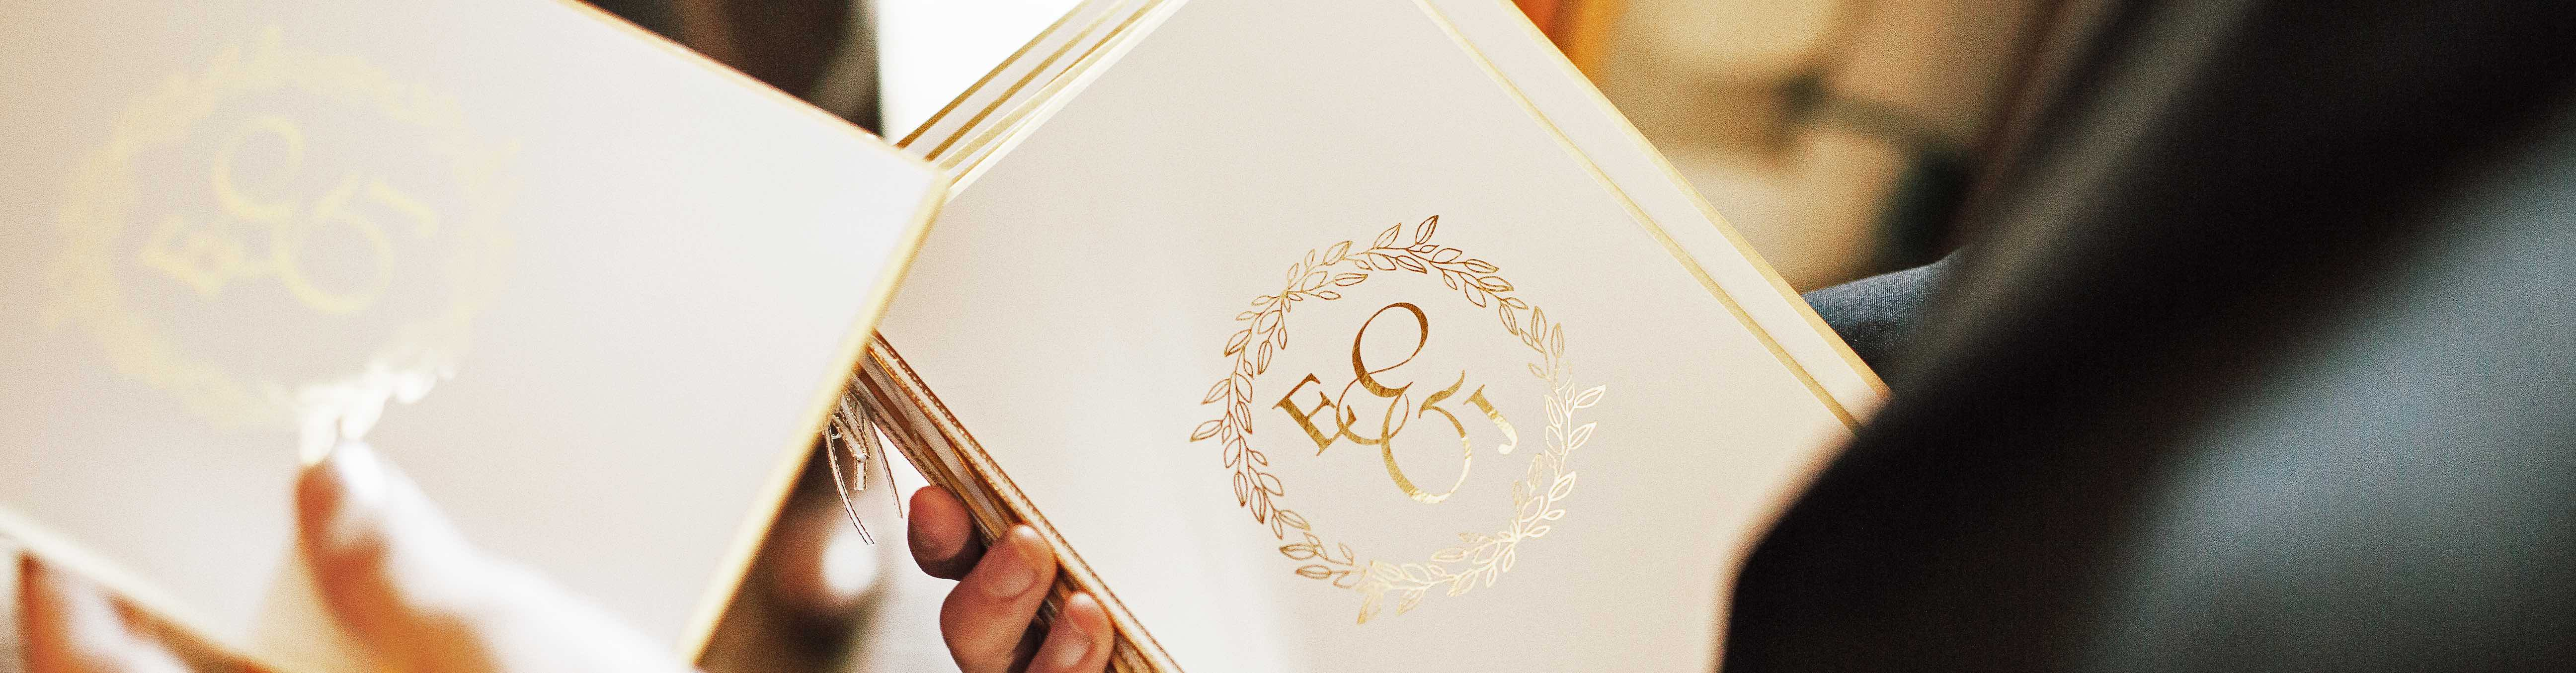 Order of Service with Metallic Gold Foil Logo from a Bespoke Wedding Stationery Package